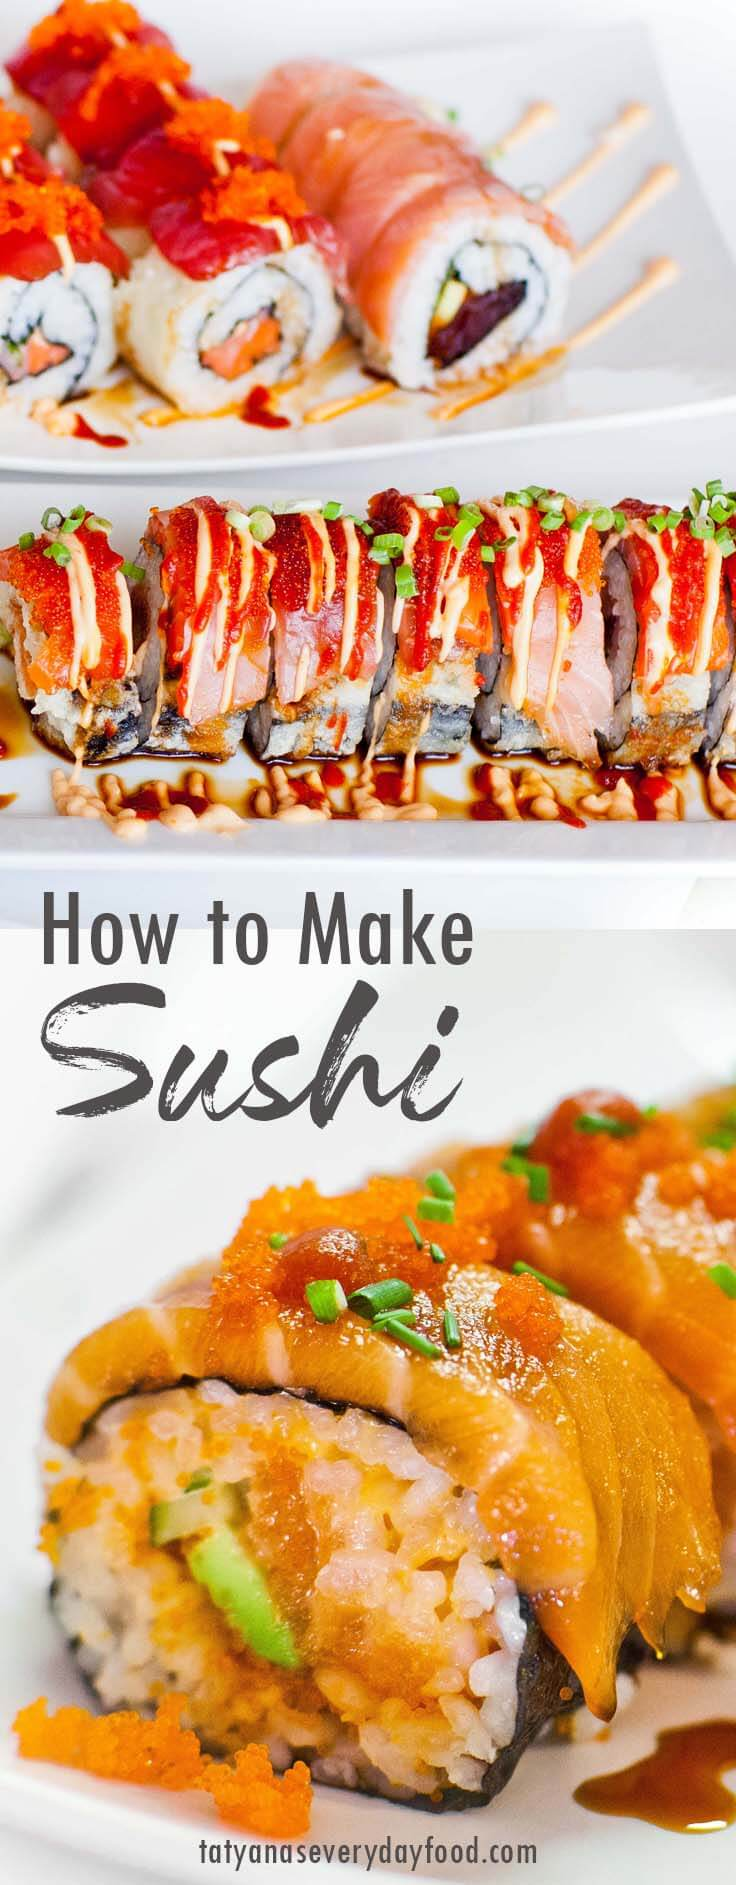 How To Make Sushi video recipe